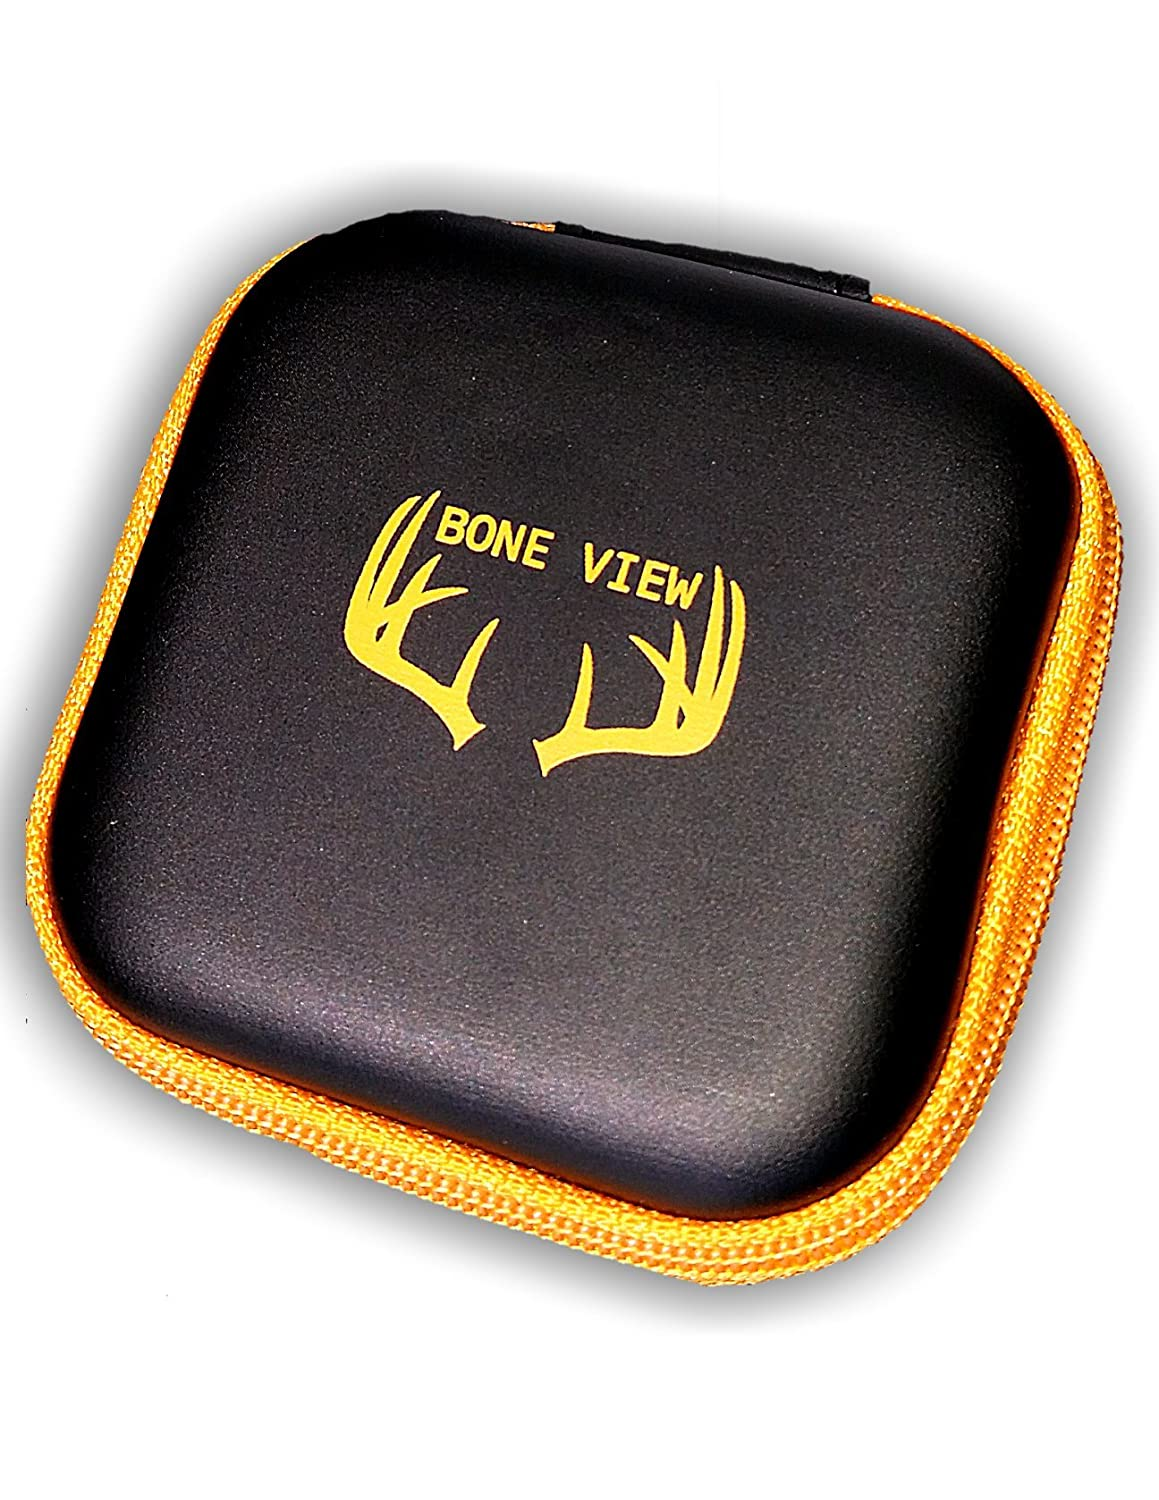 BoneView Weather-Resistant Storage Case for Trail Camera Card Reader and SD Cards